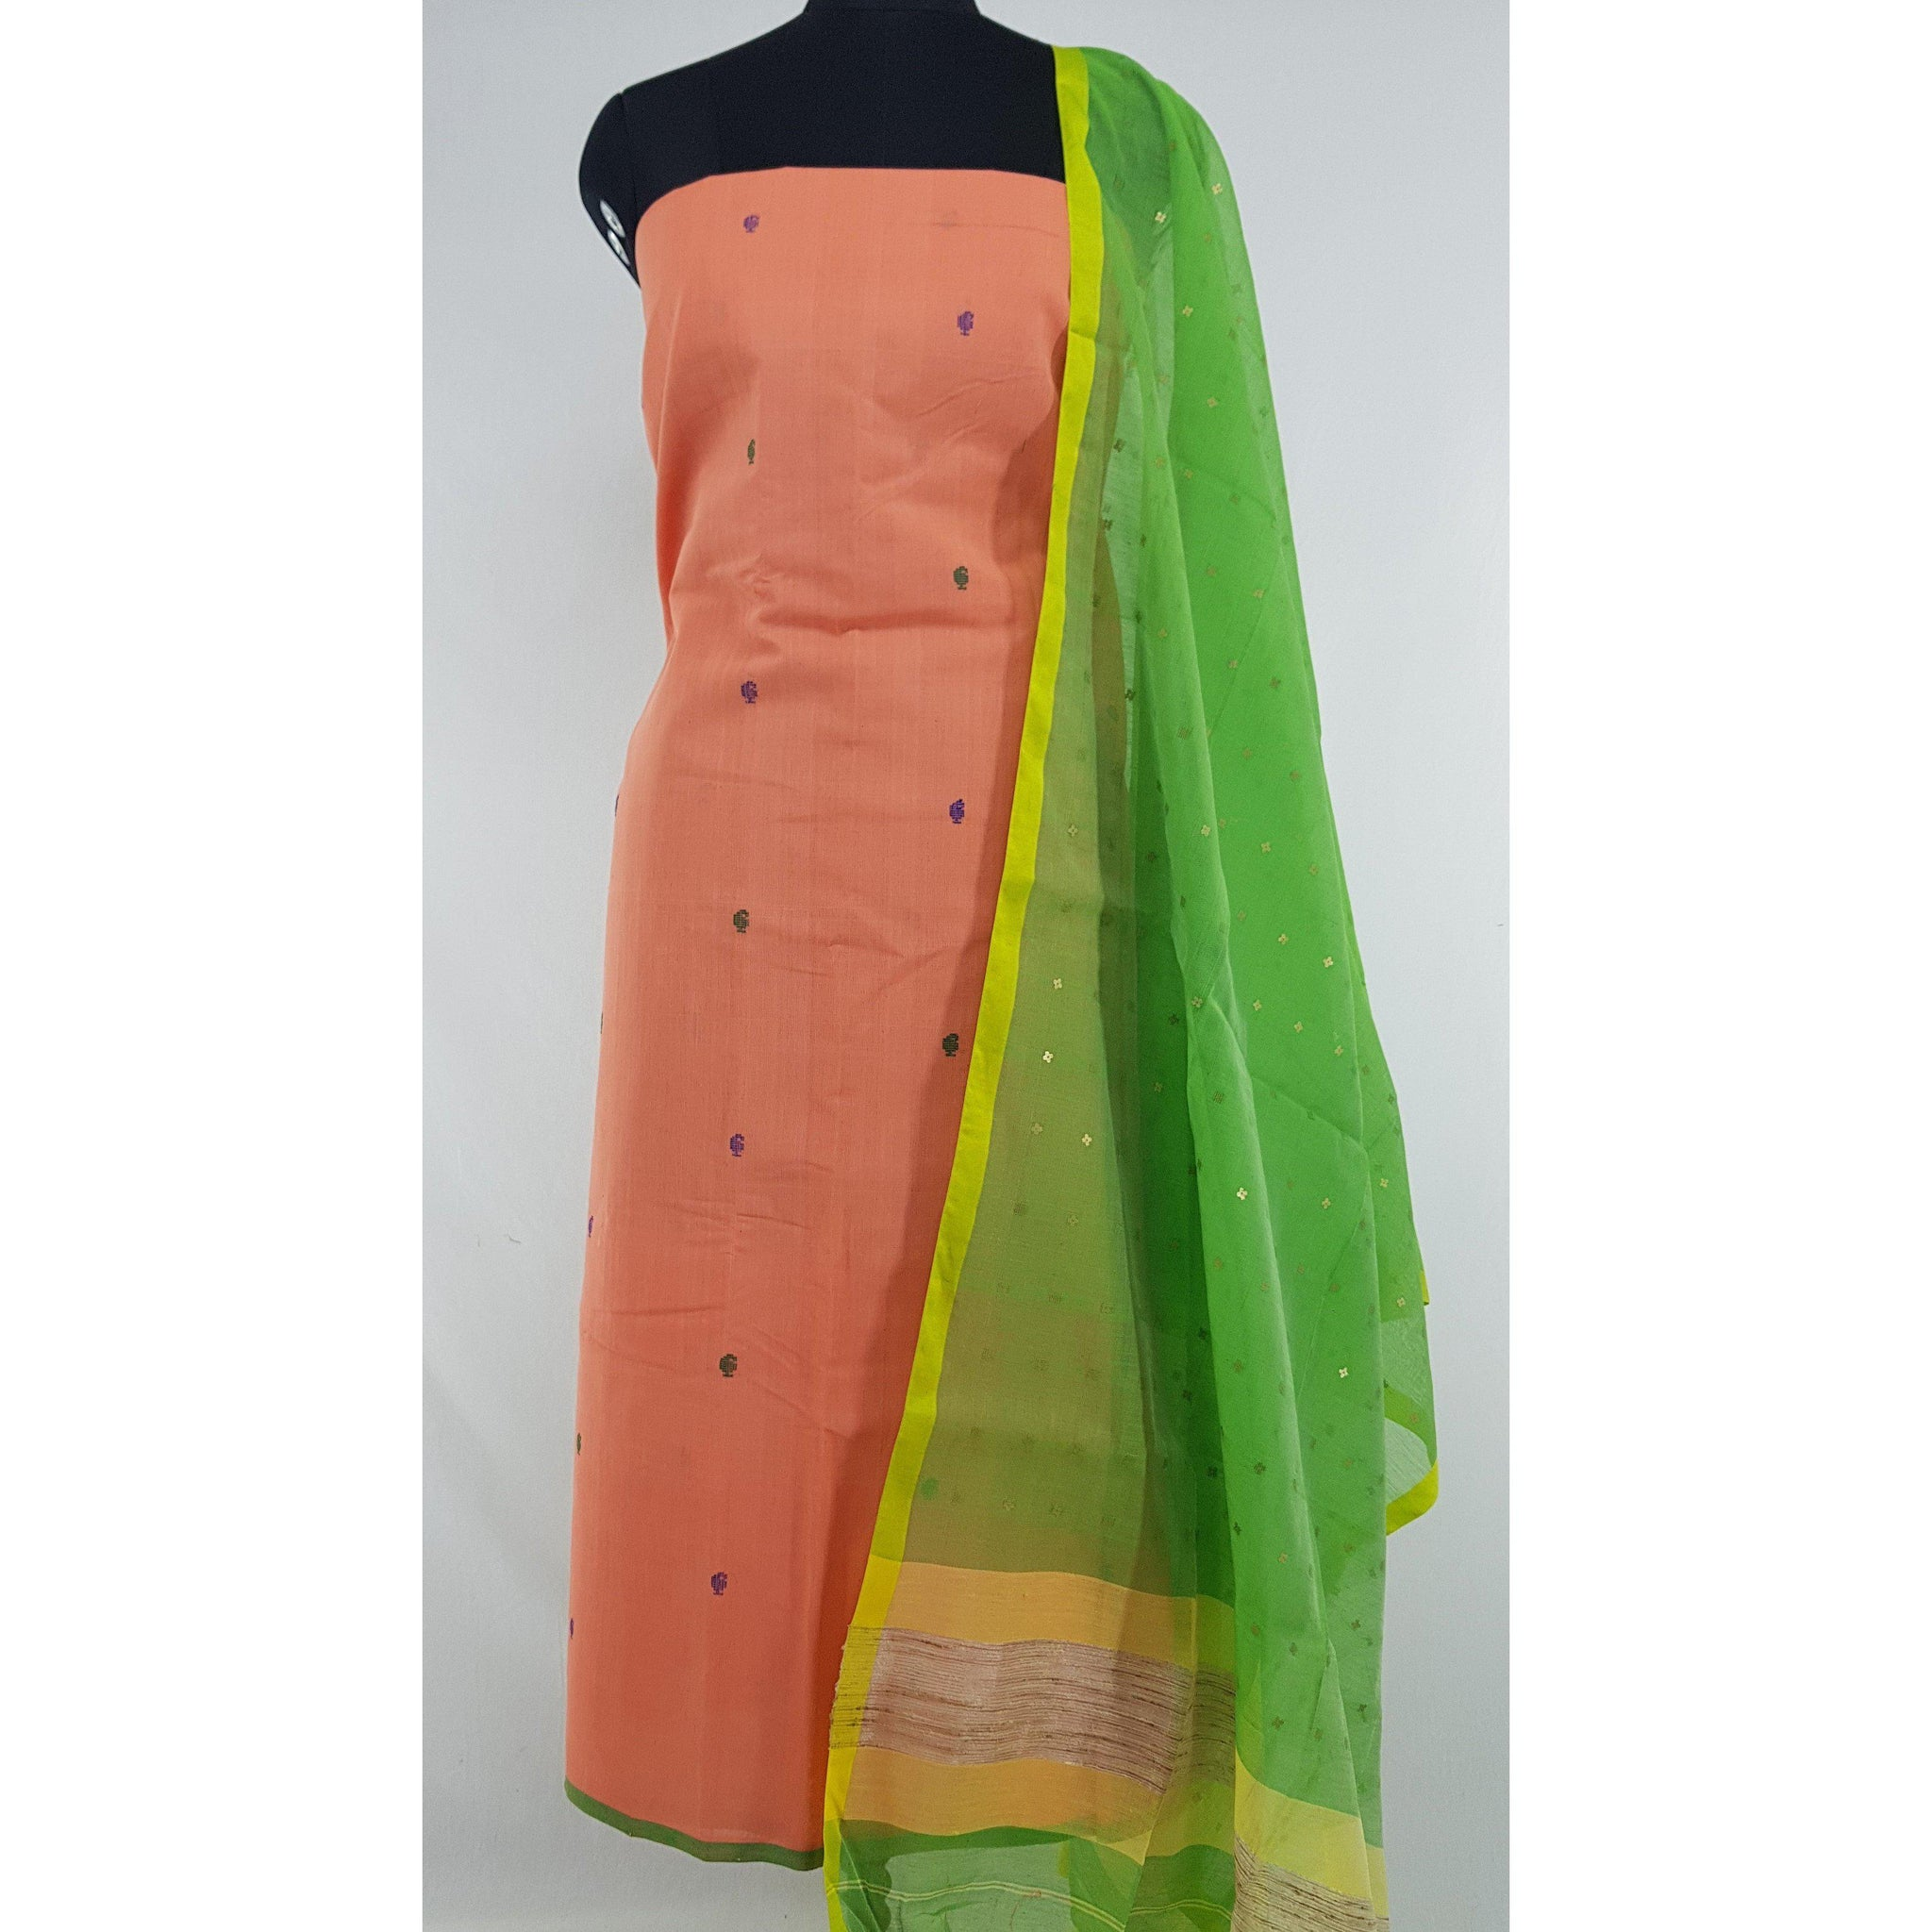 Sequin handwoven cotton silk dupatta with Handmade yarn butta cotton top - Vinshika